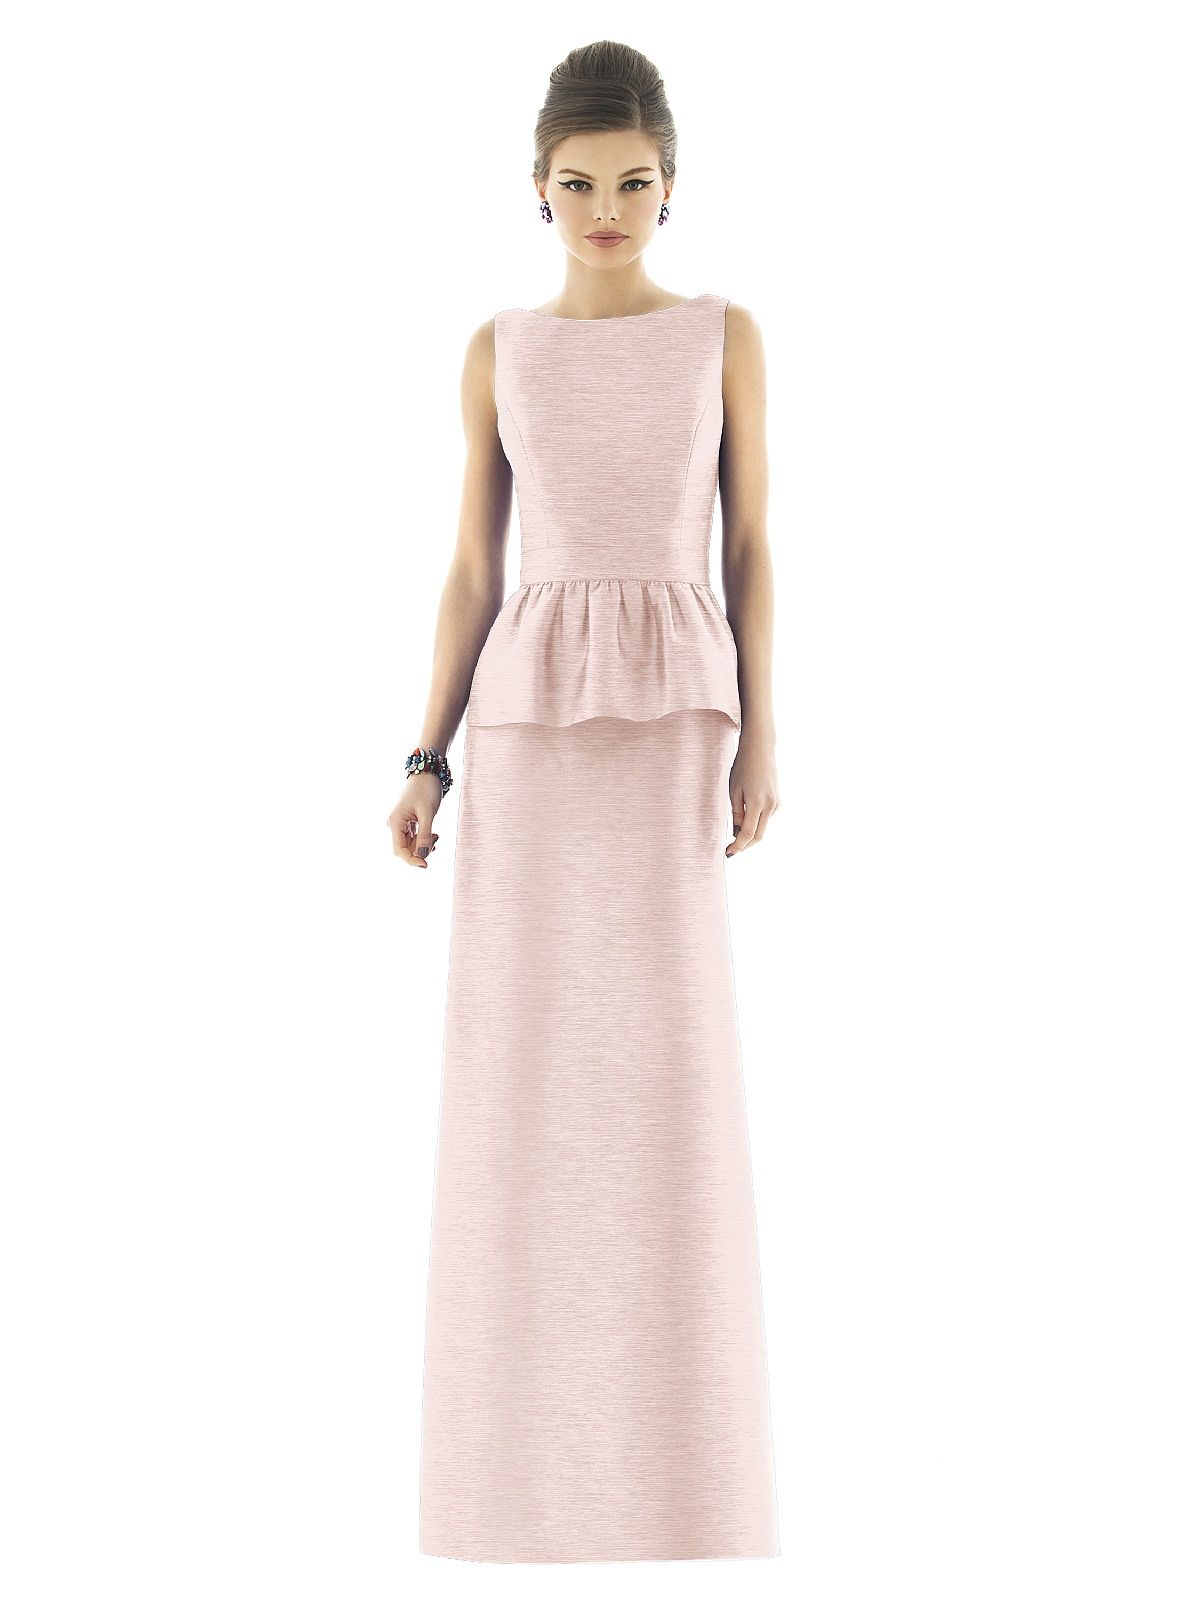 Alfred Sugn Style D559 fabric Dupioni, color in Pearl Pink